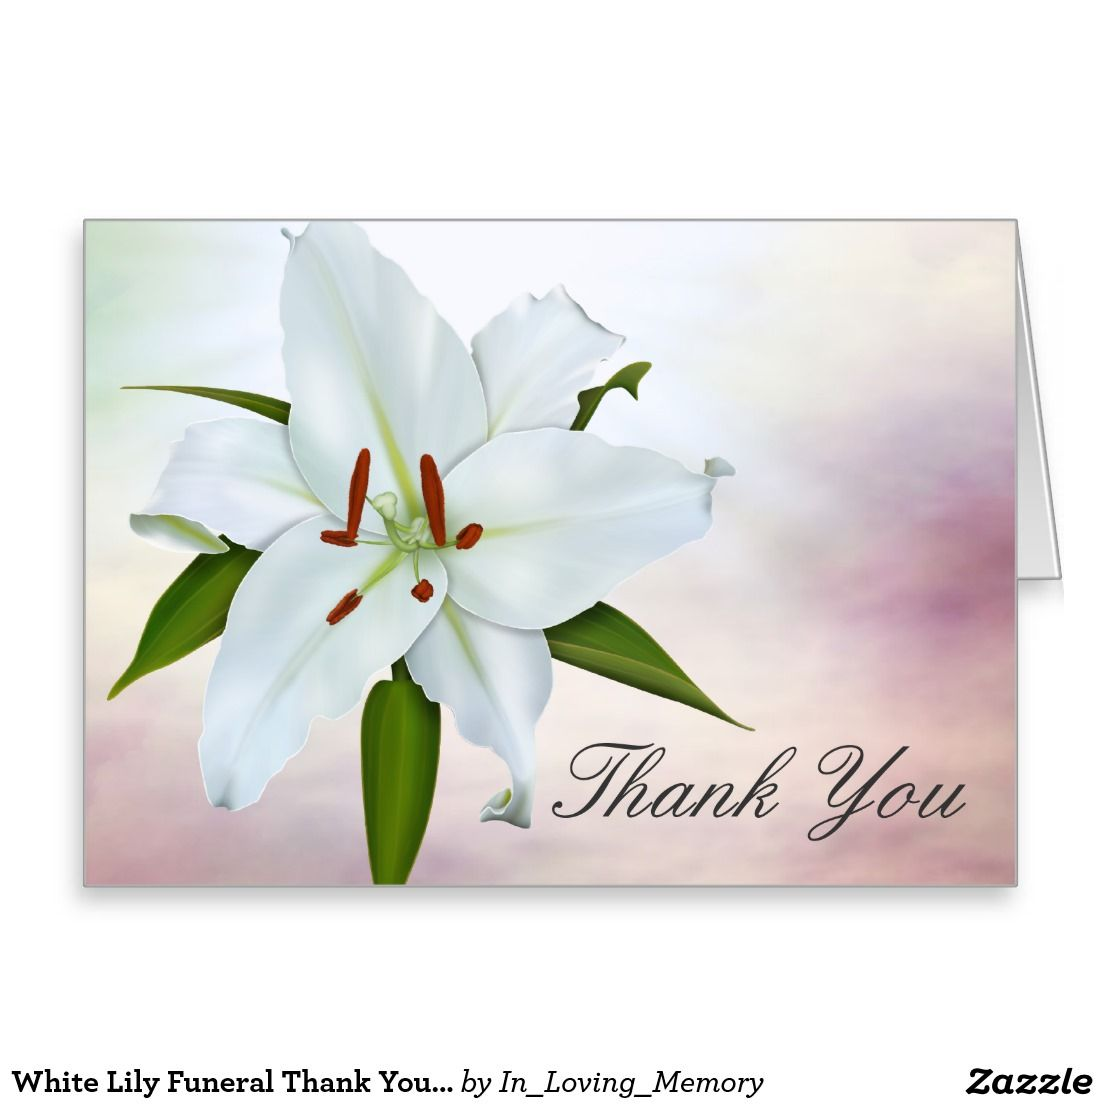 White lily funeral thank you cards pinterest white lilies and white lily funeral thank you cards izmirmasajfo